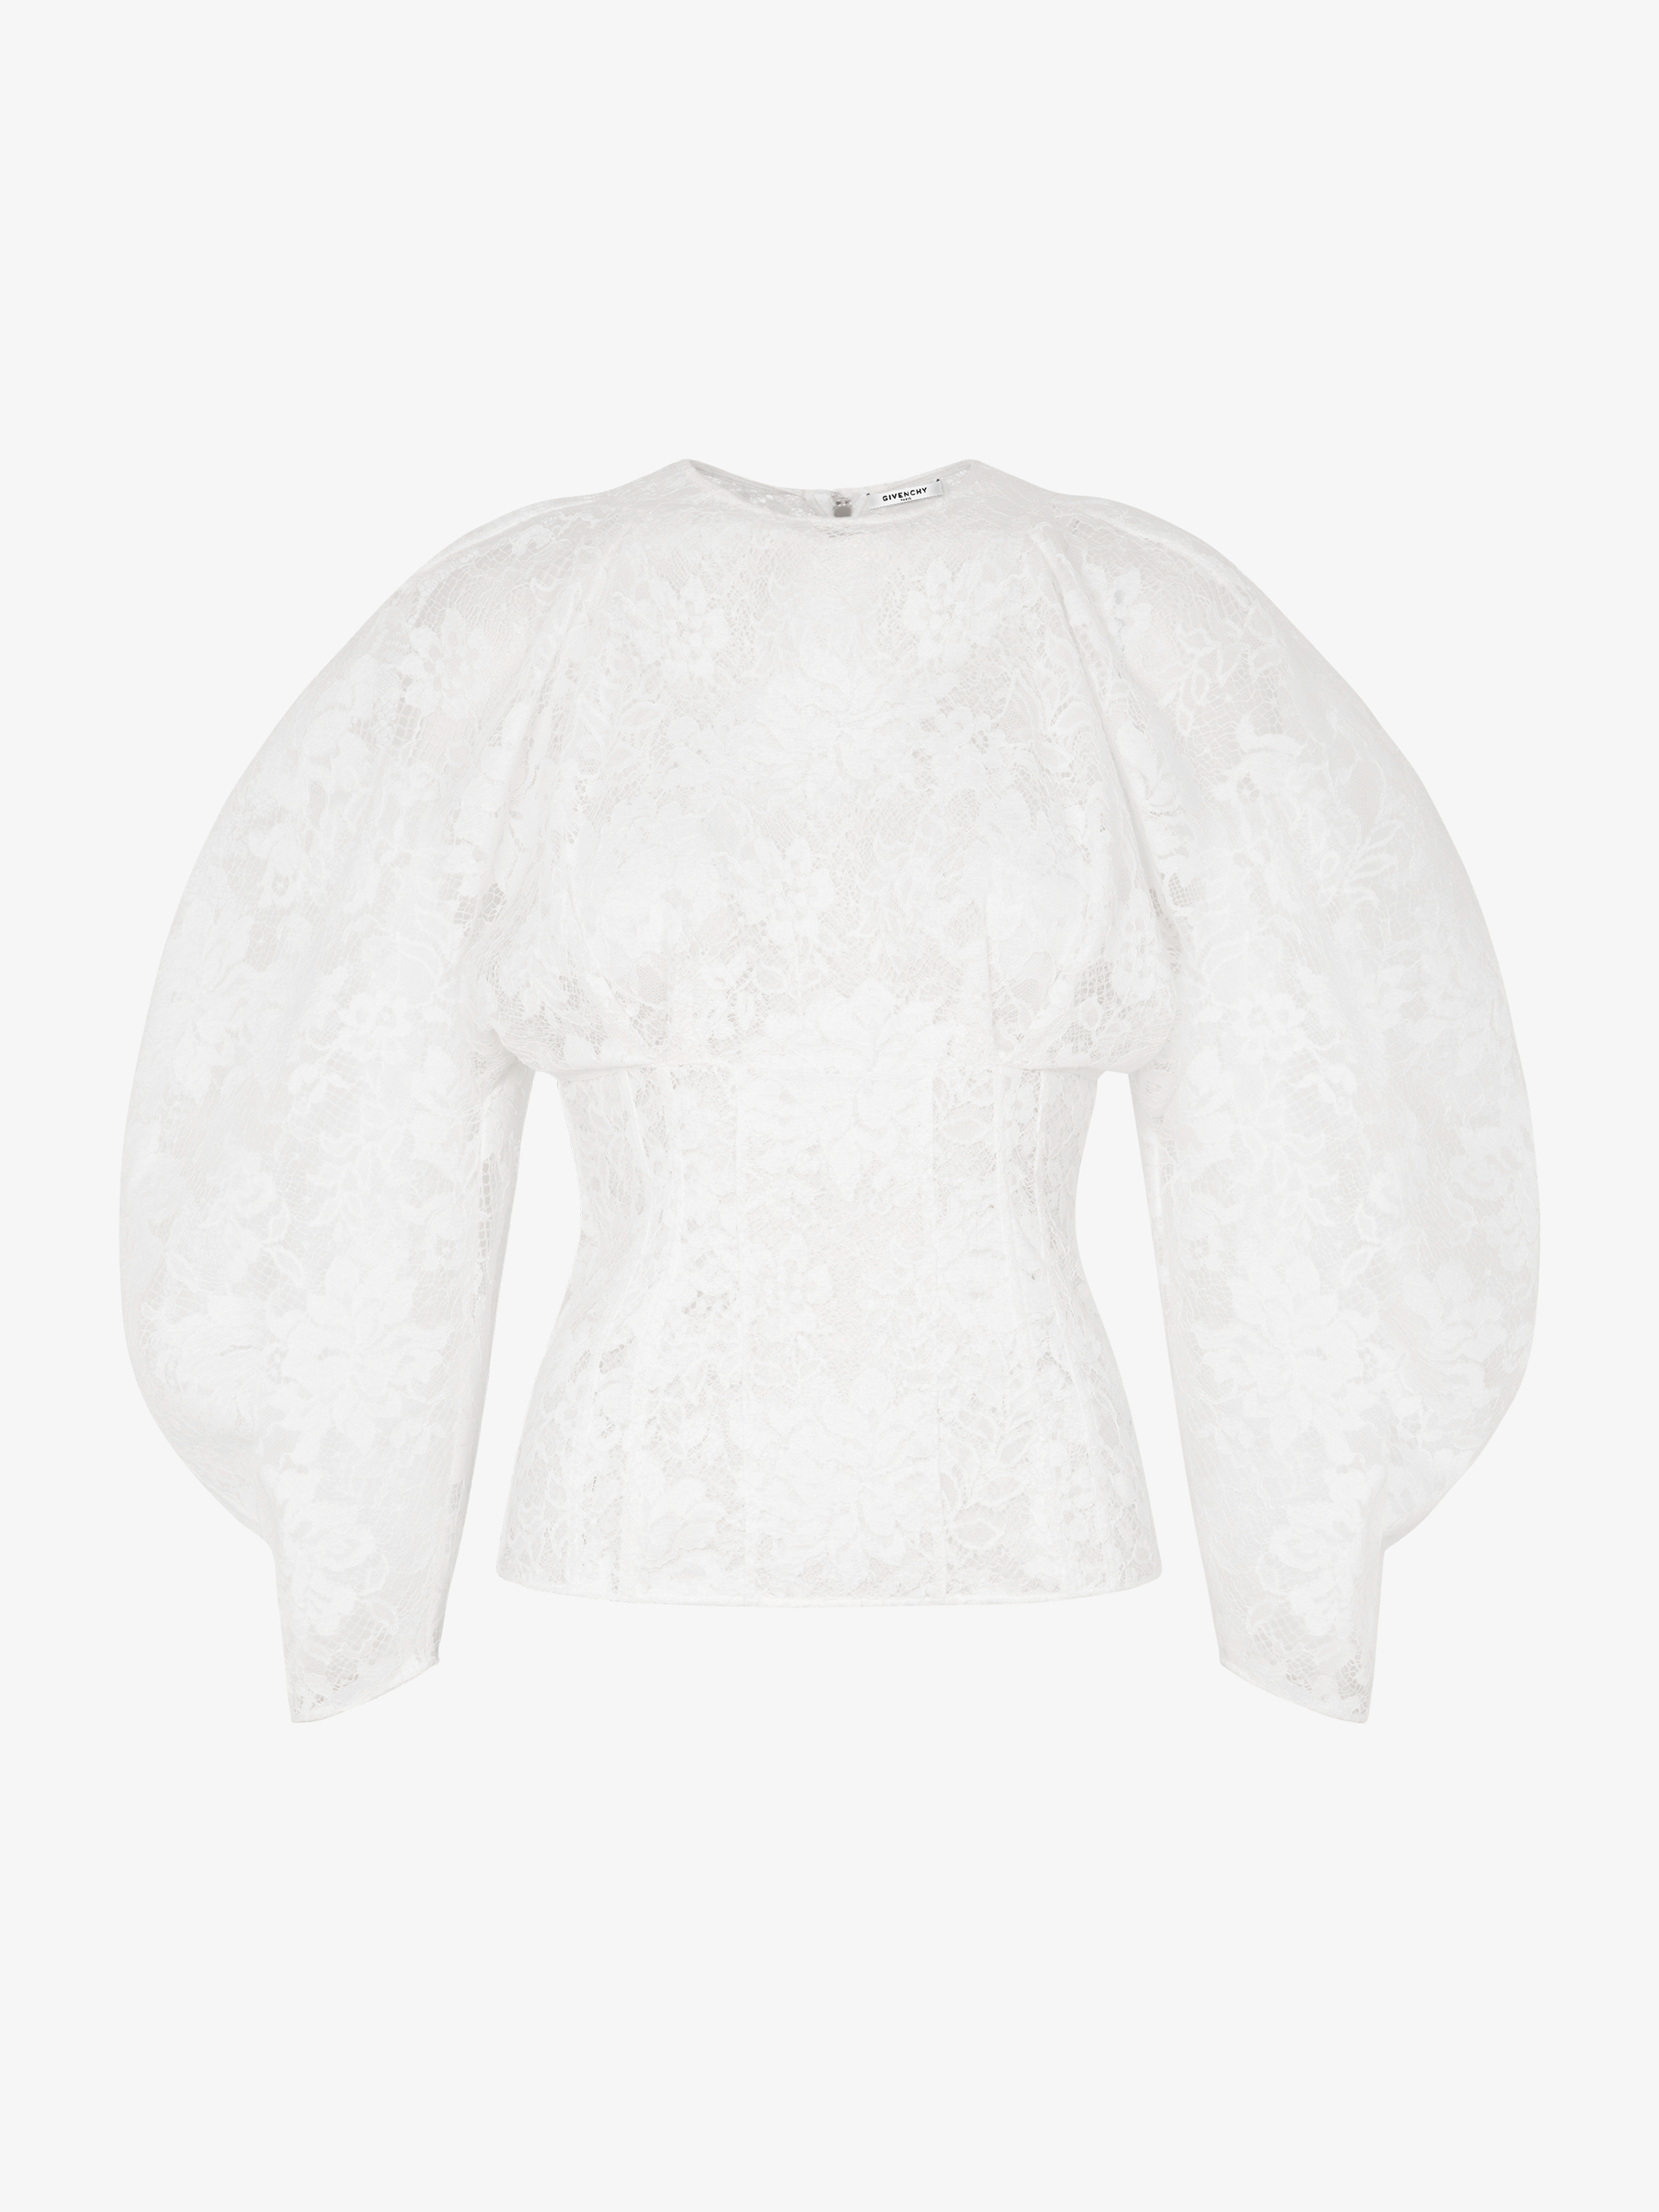 Lace top with oversized sleeves